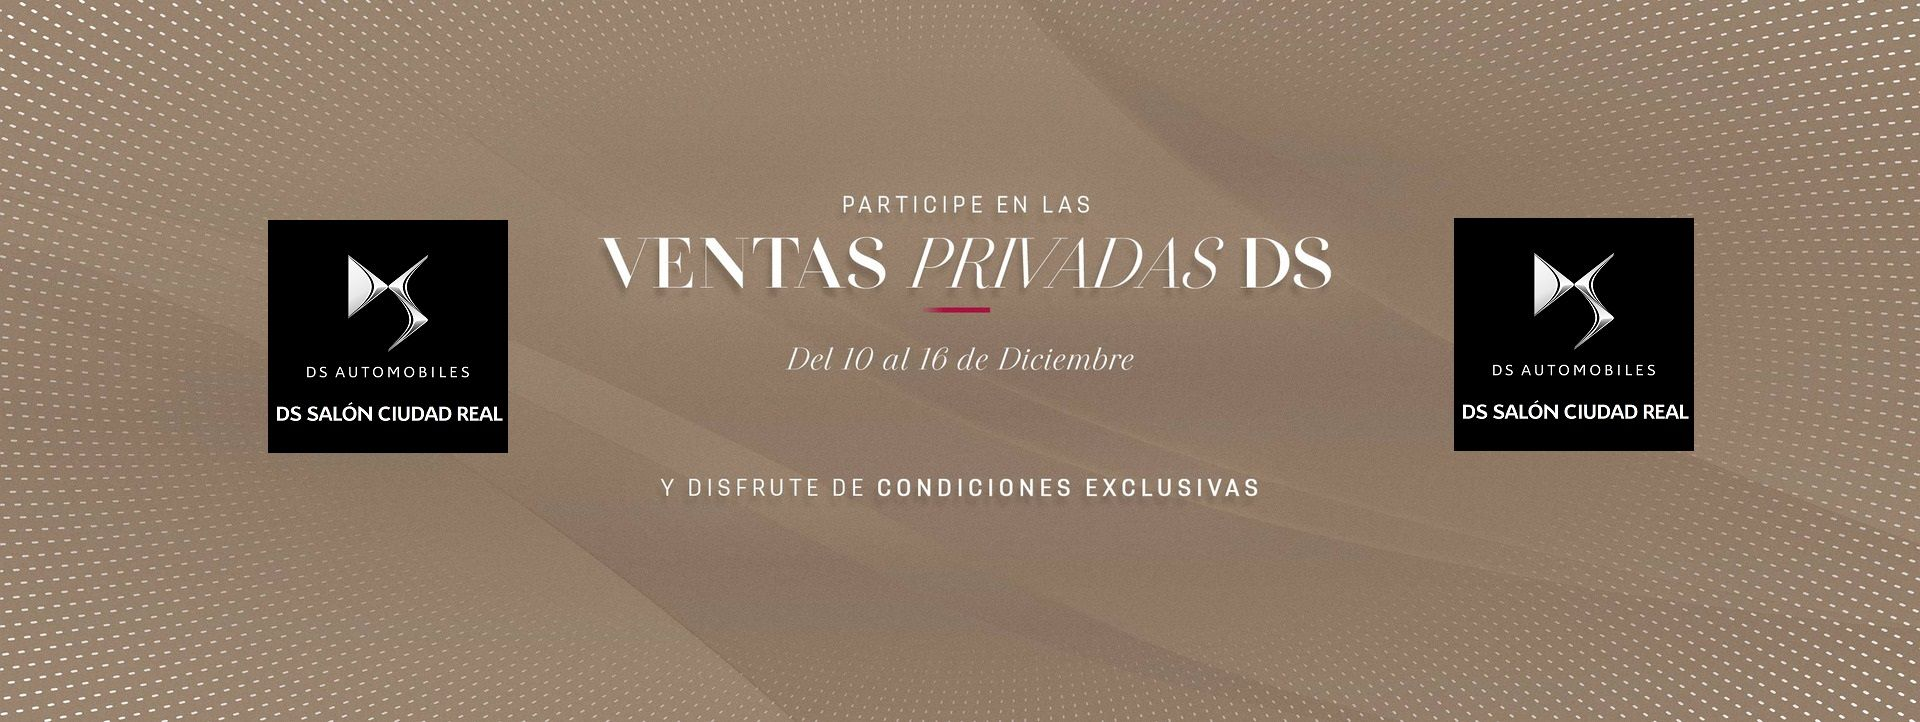 VENTAS PRIVADAS DS SALON CIUDAD REAL